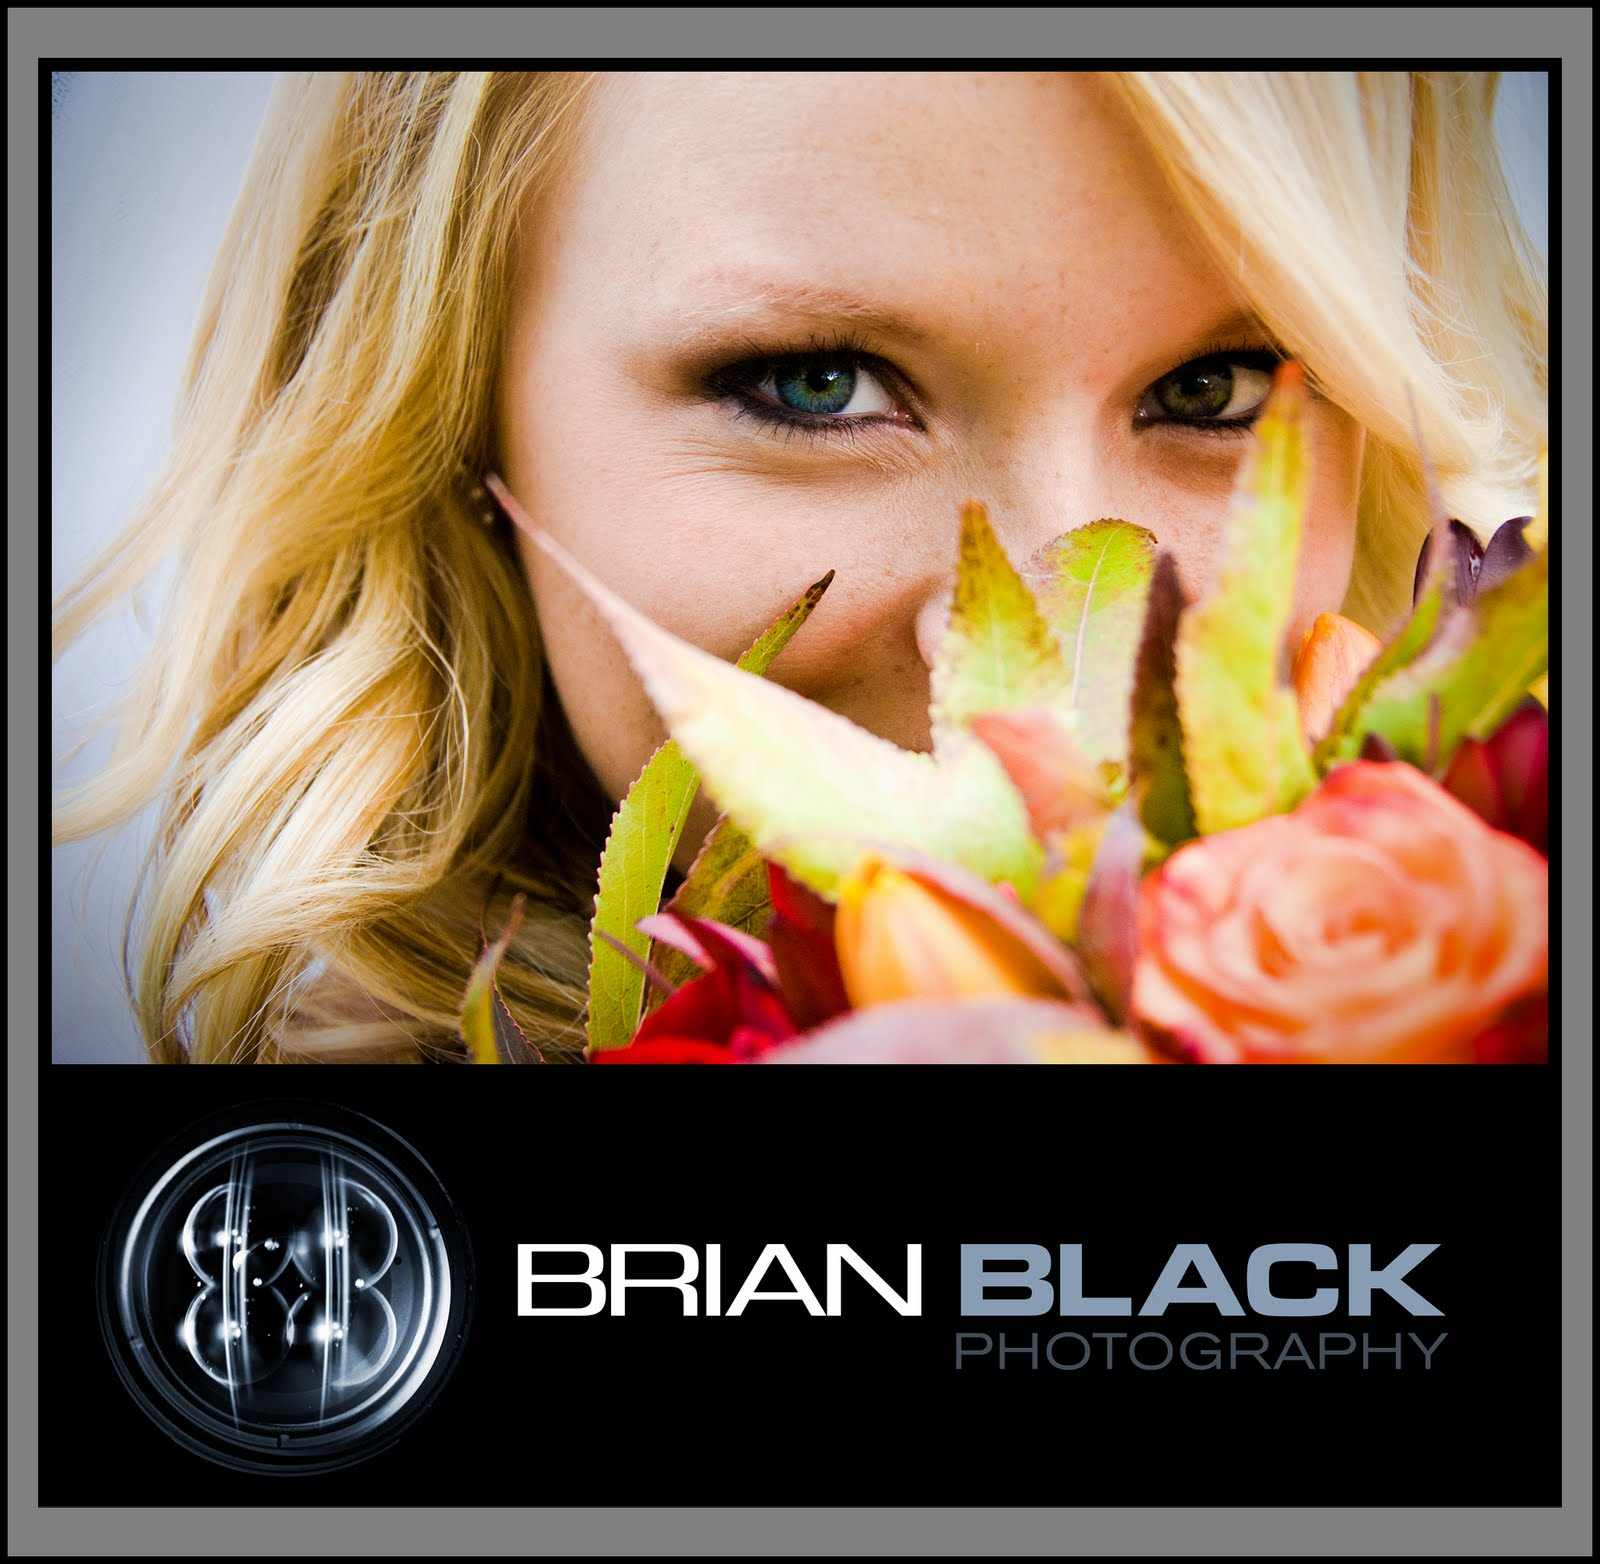 Brian Black Photography